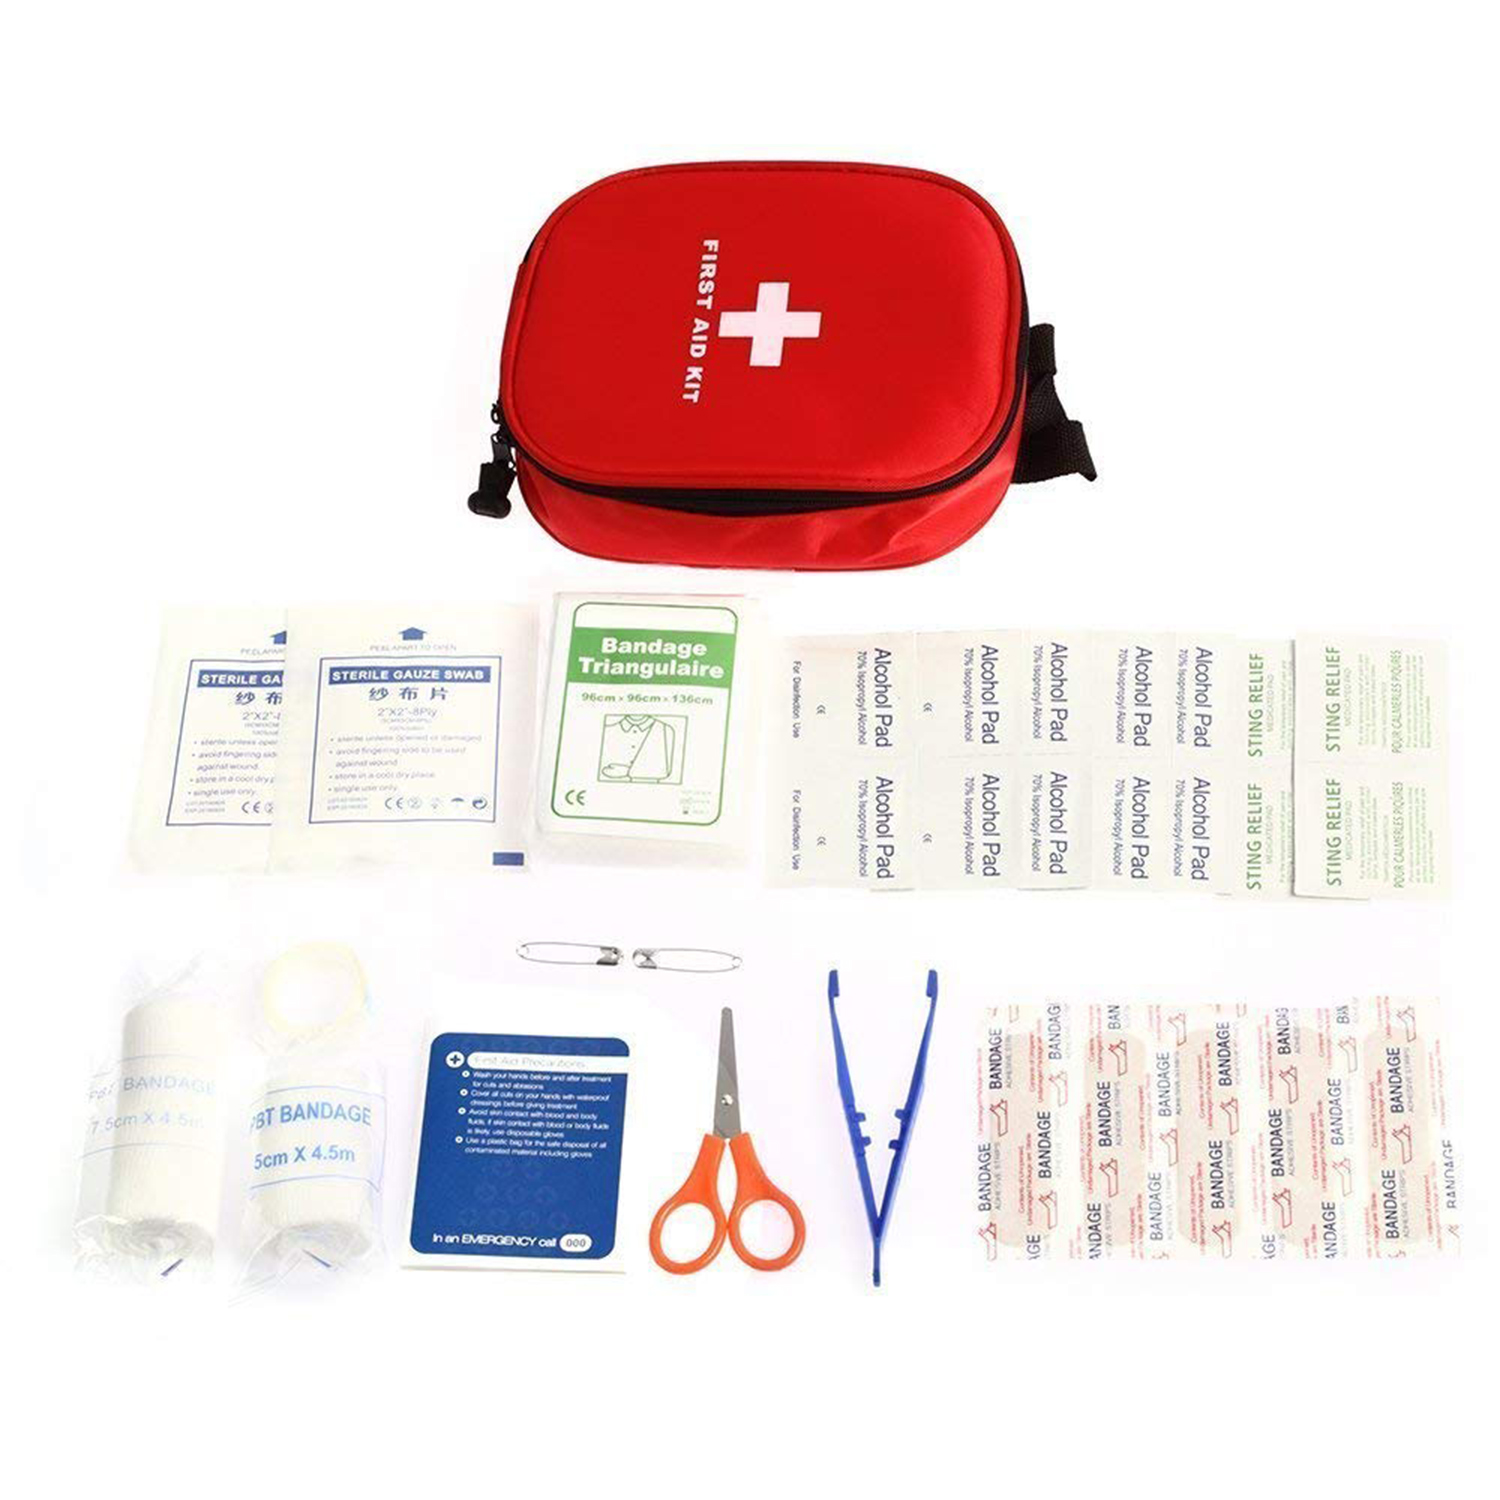 MOOL First Aid Kit- Medical Emergency Kit Waterproof Portable Essential Injuries For Car Kitchen Camping Travel Office Sports